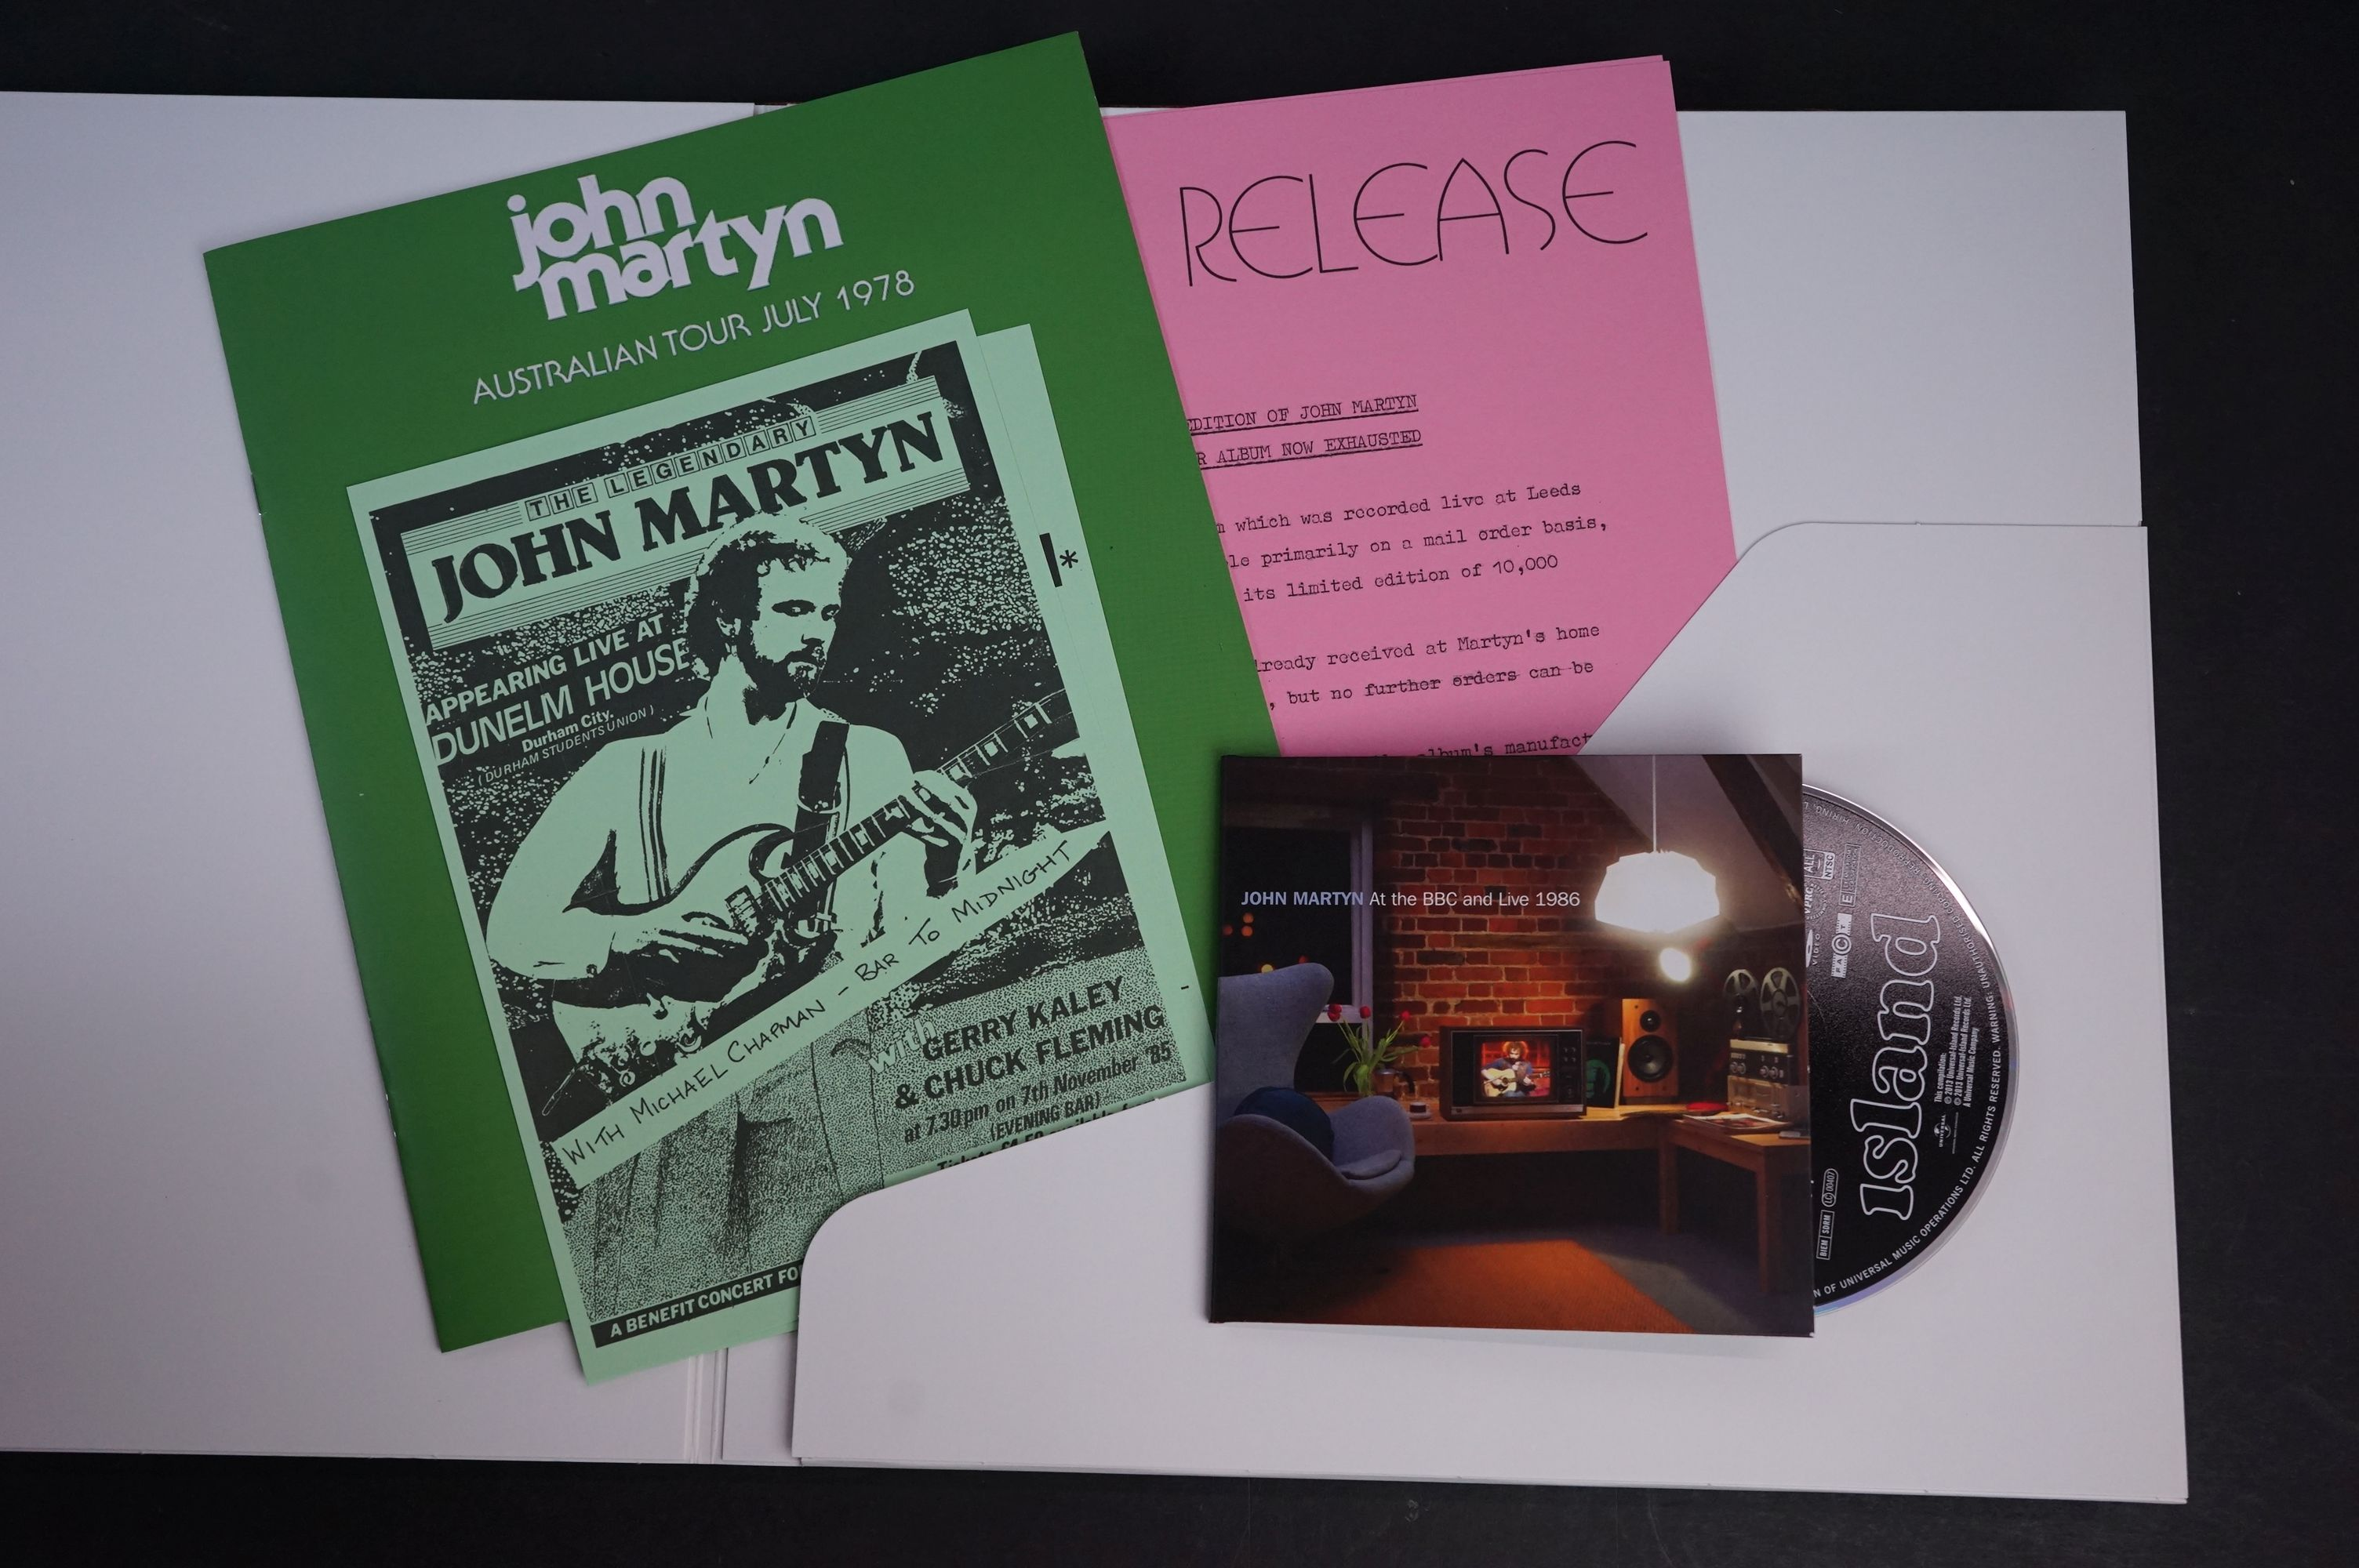 CD / DVD / Vinyl - John Martyn The Island Years 374228-8 complete and ex - Image 6 of 10